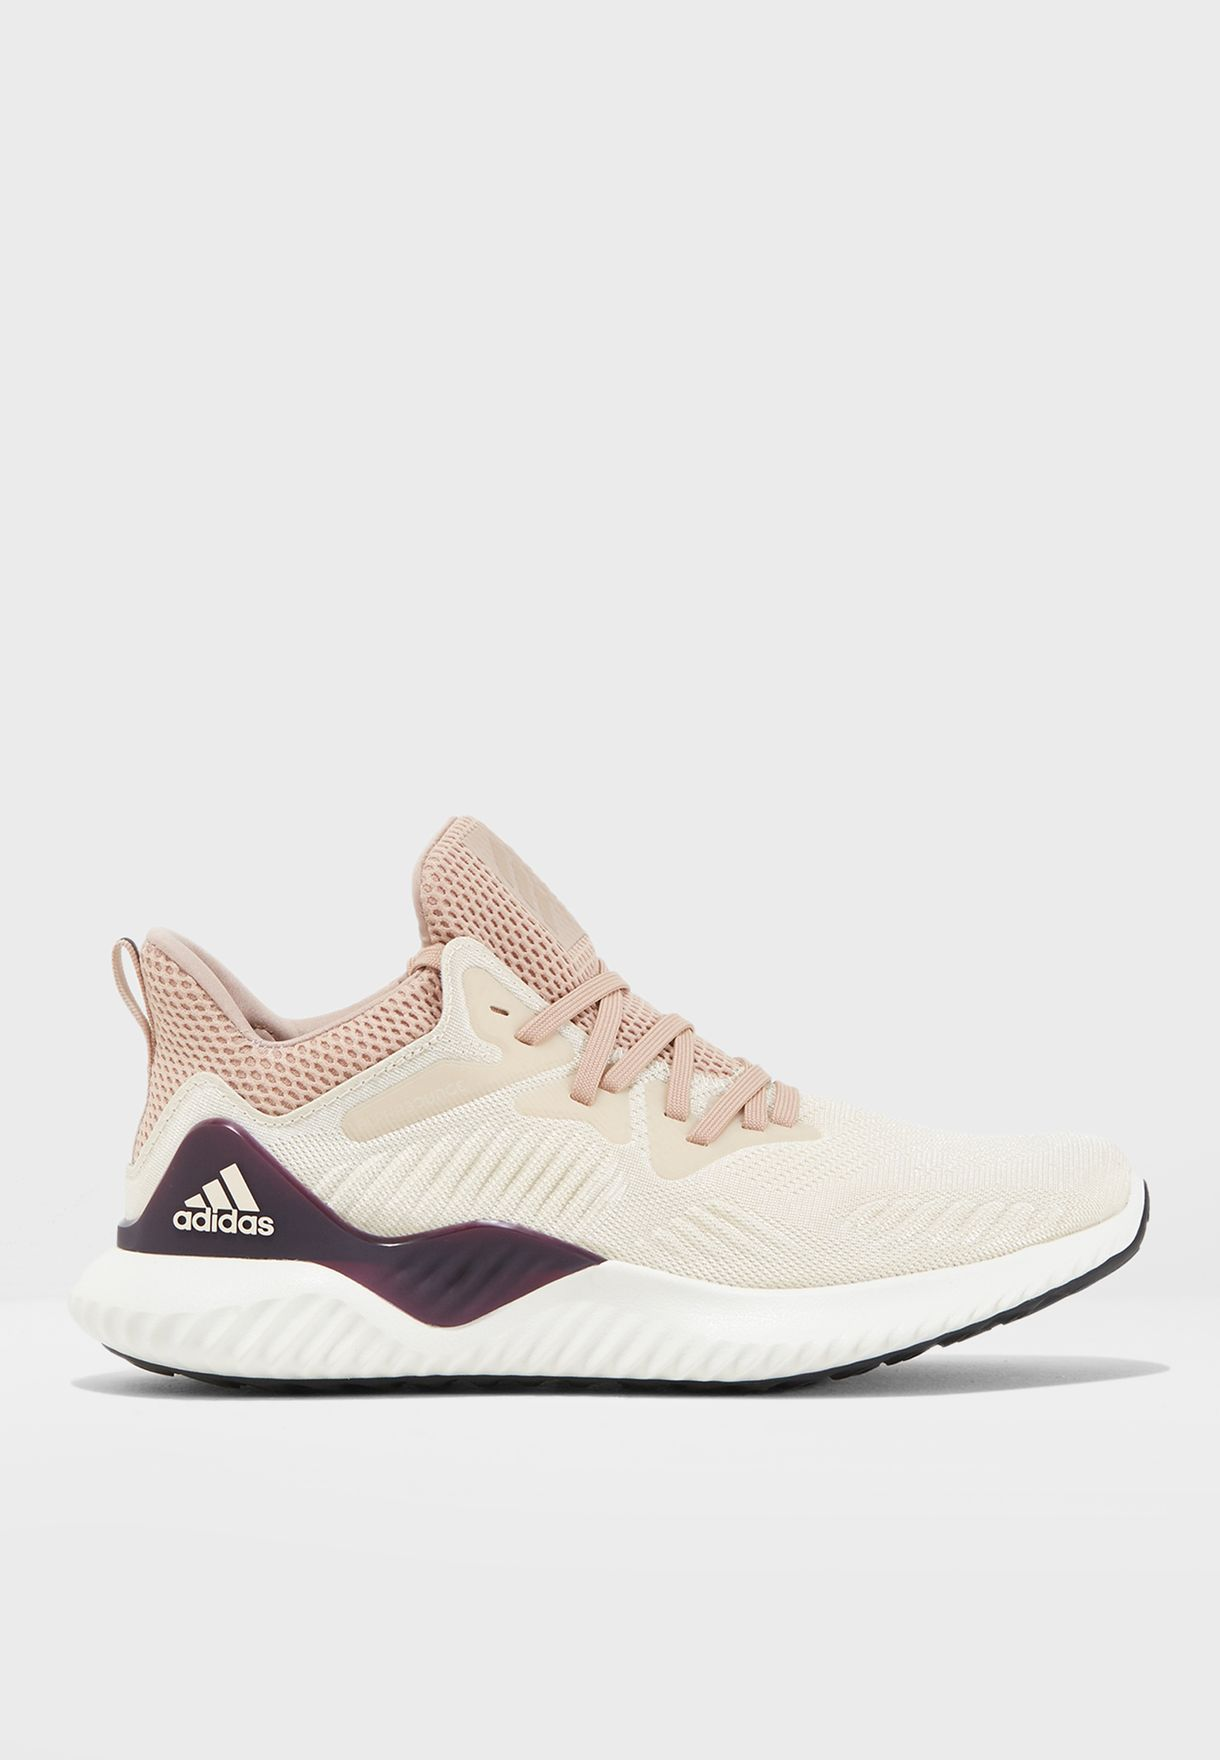 594f08e388f61 Shop adidas beige Alphabounce Beyond DB0206 for Women in Qatar ...